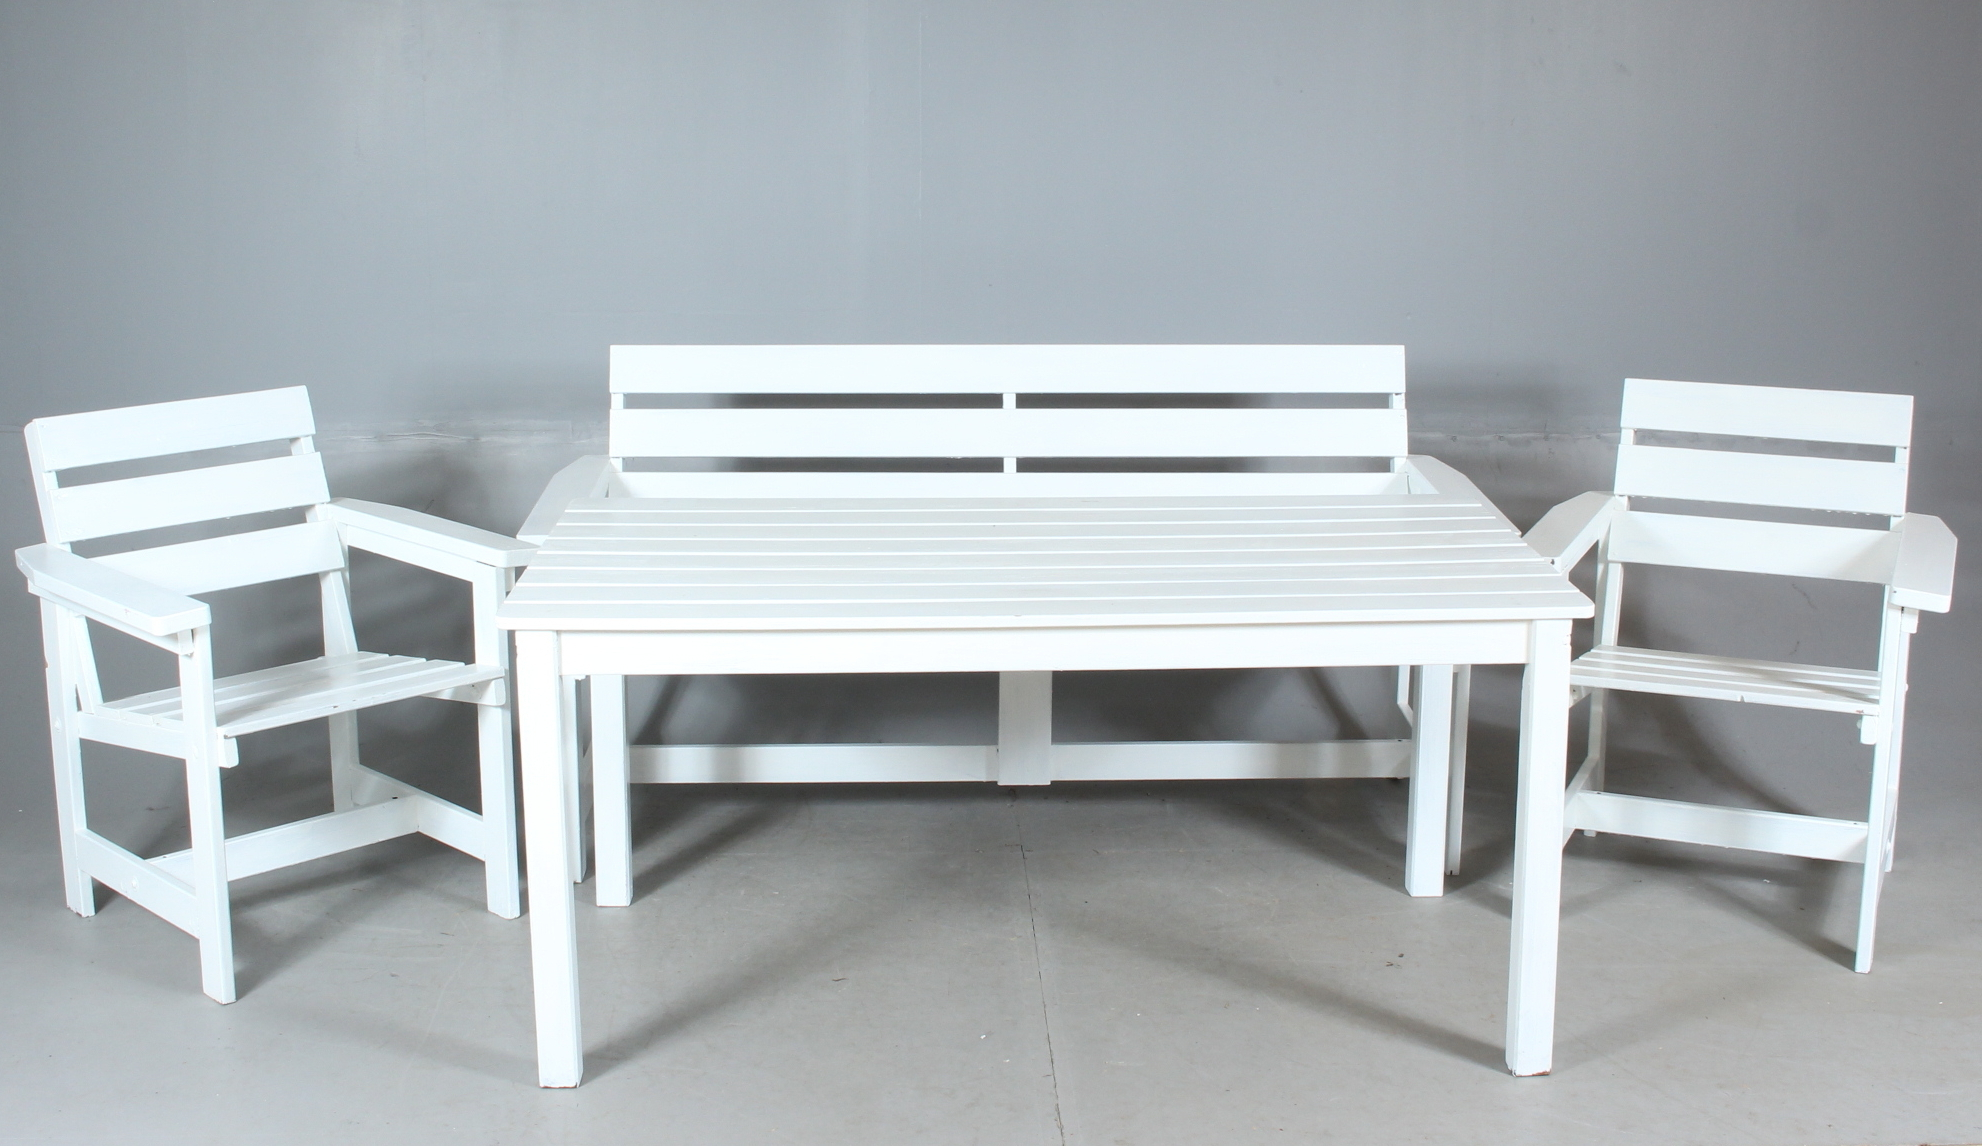 Tradgardsmobler 4 Delar Tra Furniture Garden Furniture Auctionet